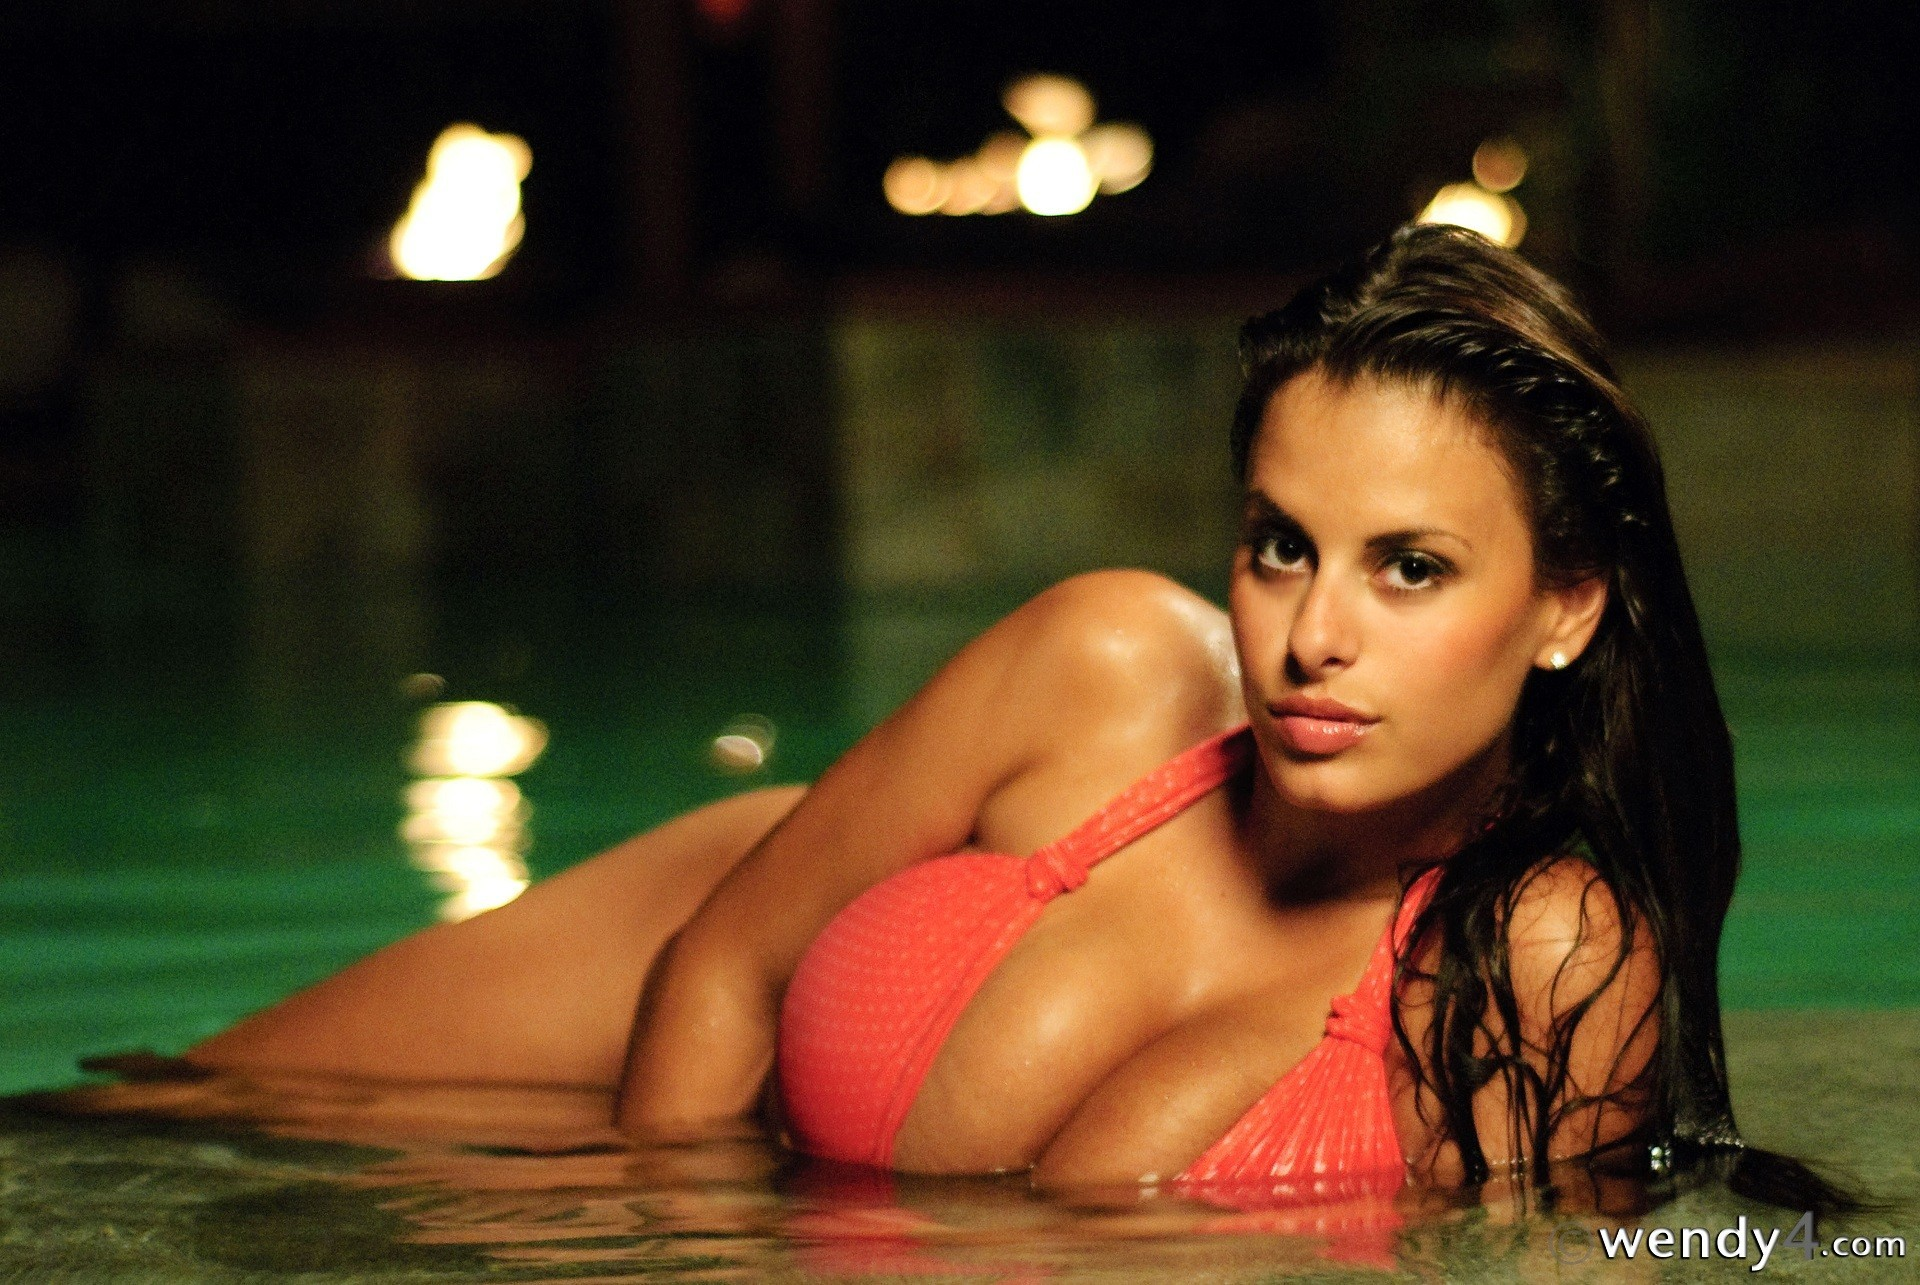 brunettes woman bikini night HD Wallpaper